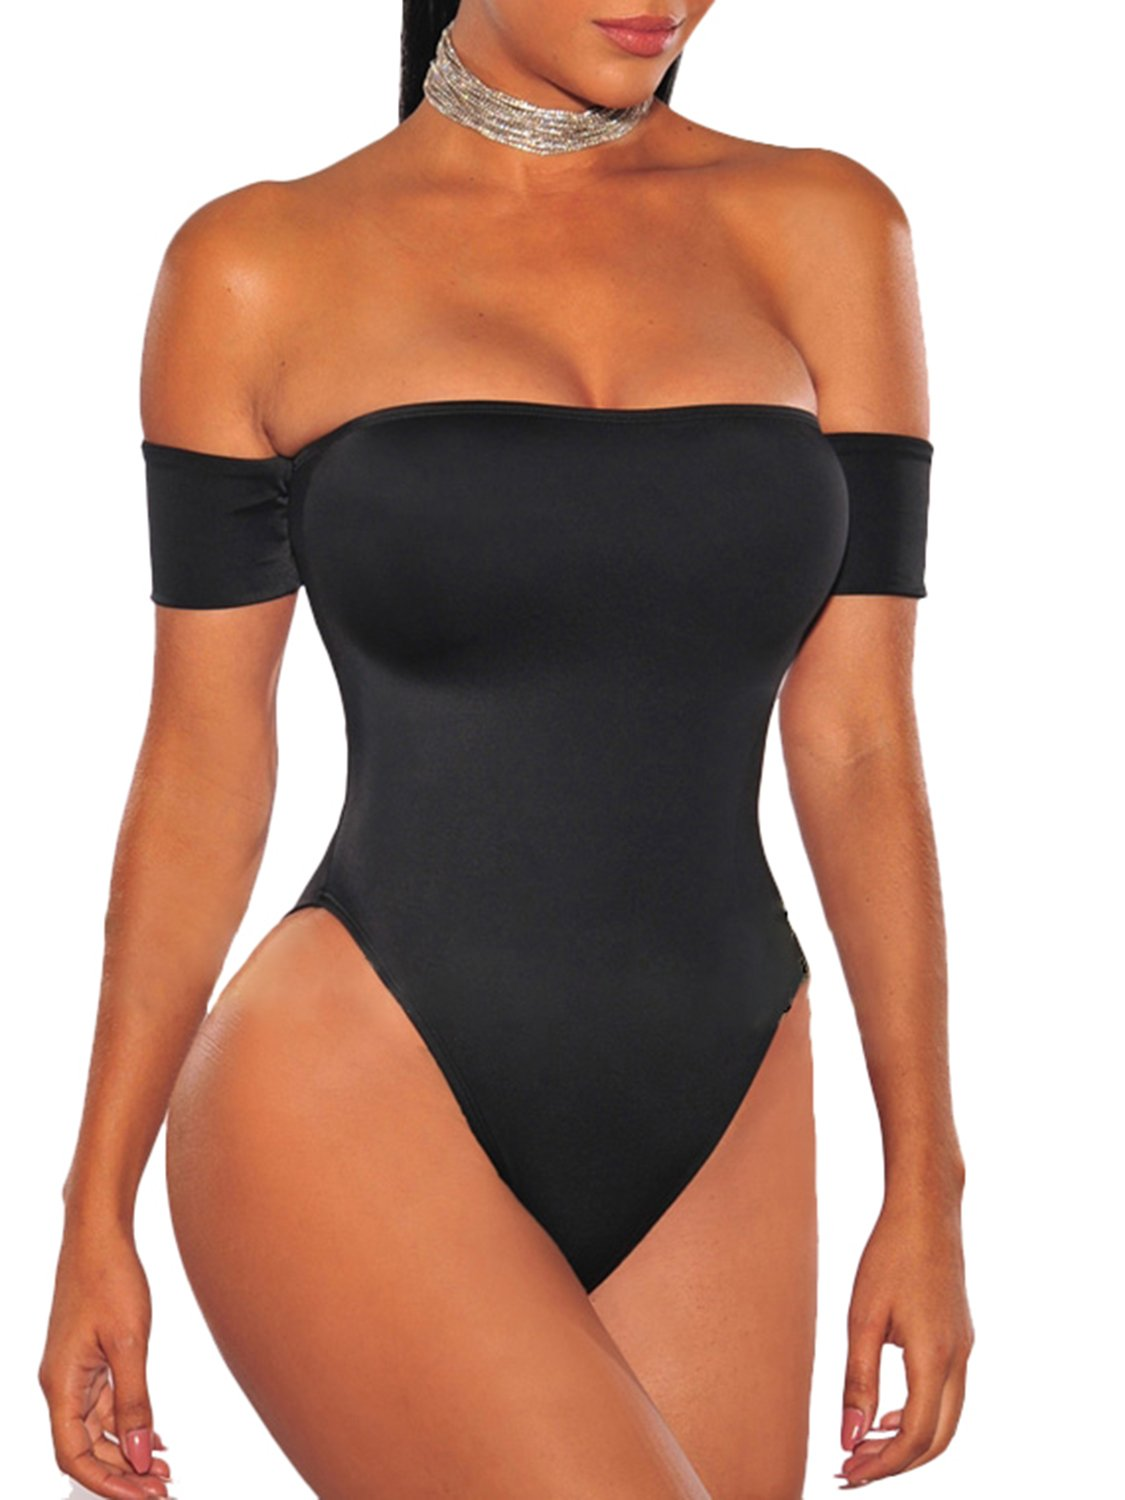 Glamaker Women's Sexy Off Shoulder Stretchy Bosysuit With Short Sleeves 61nkcEjFpyL